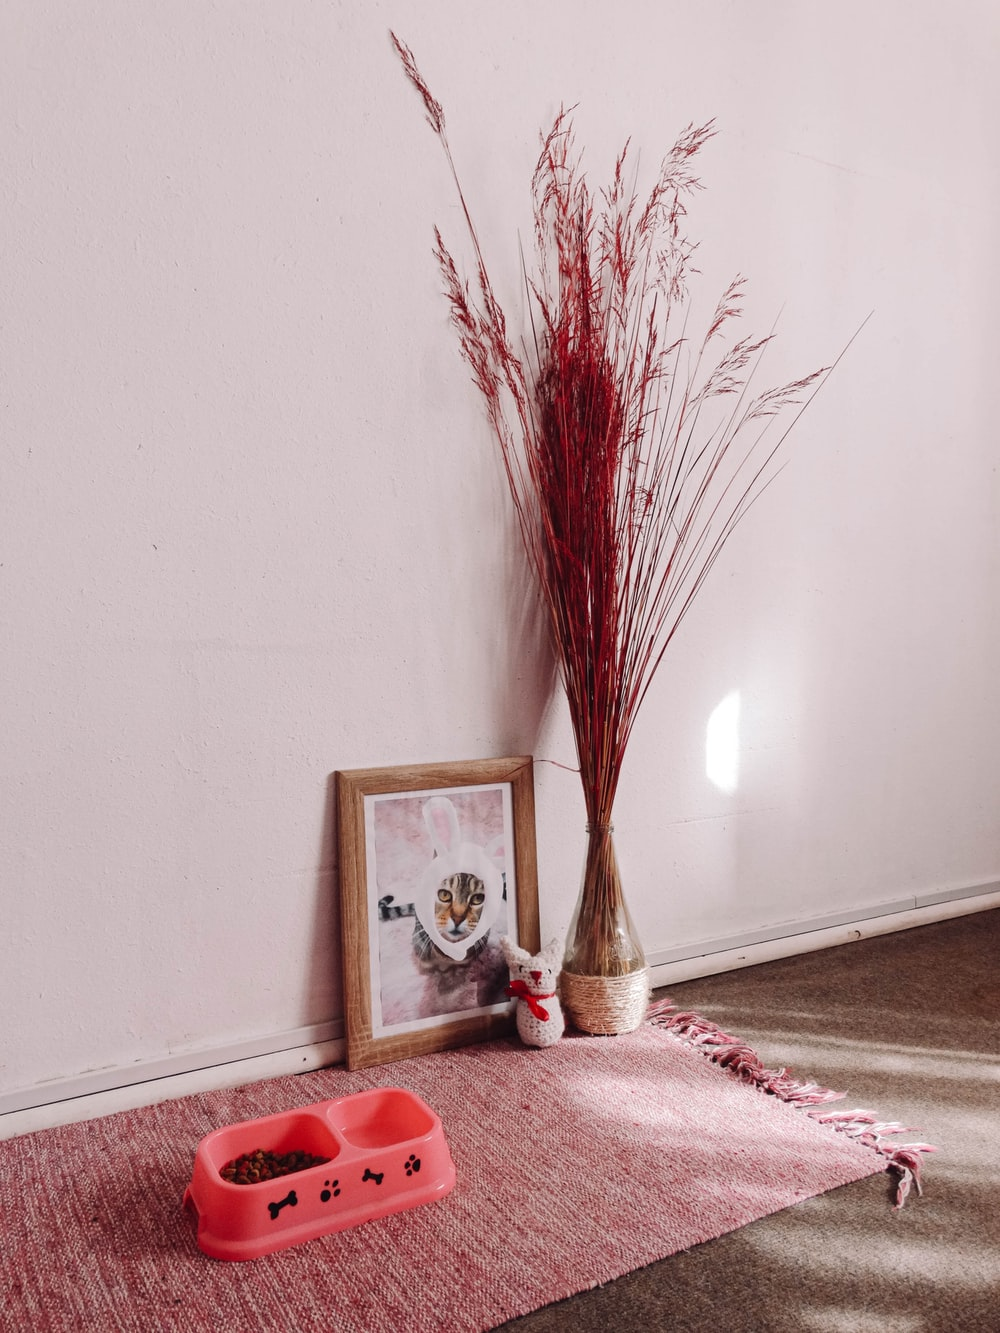 brown and red plant beside white wall